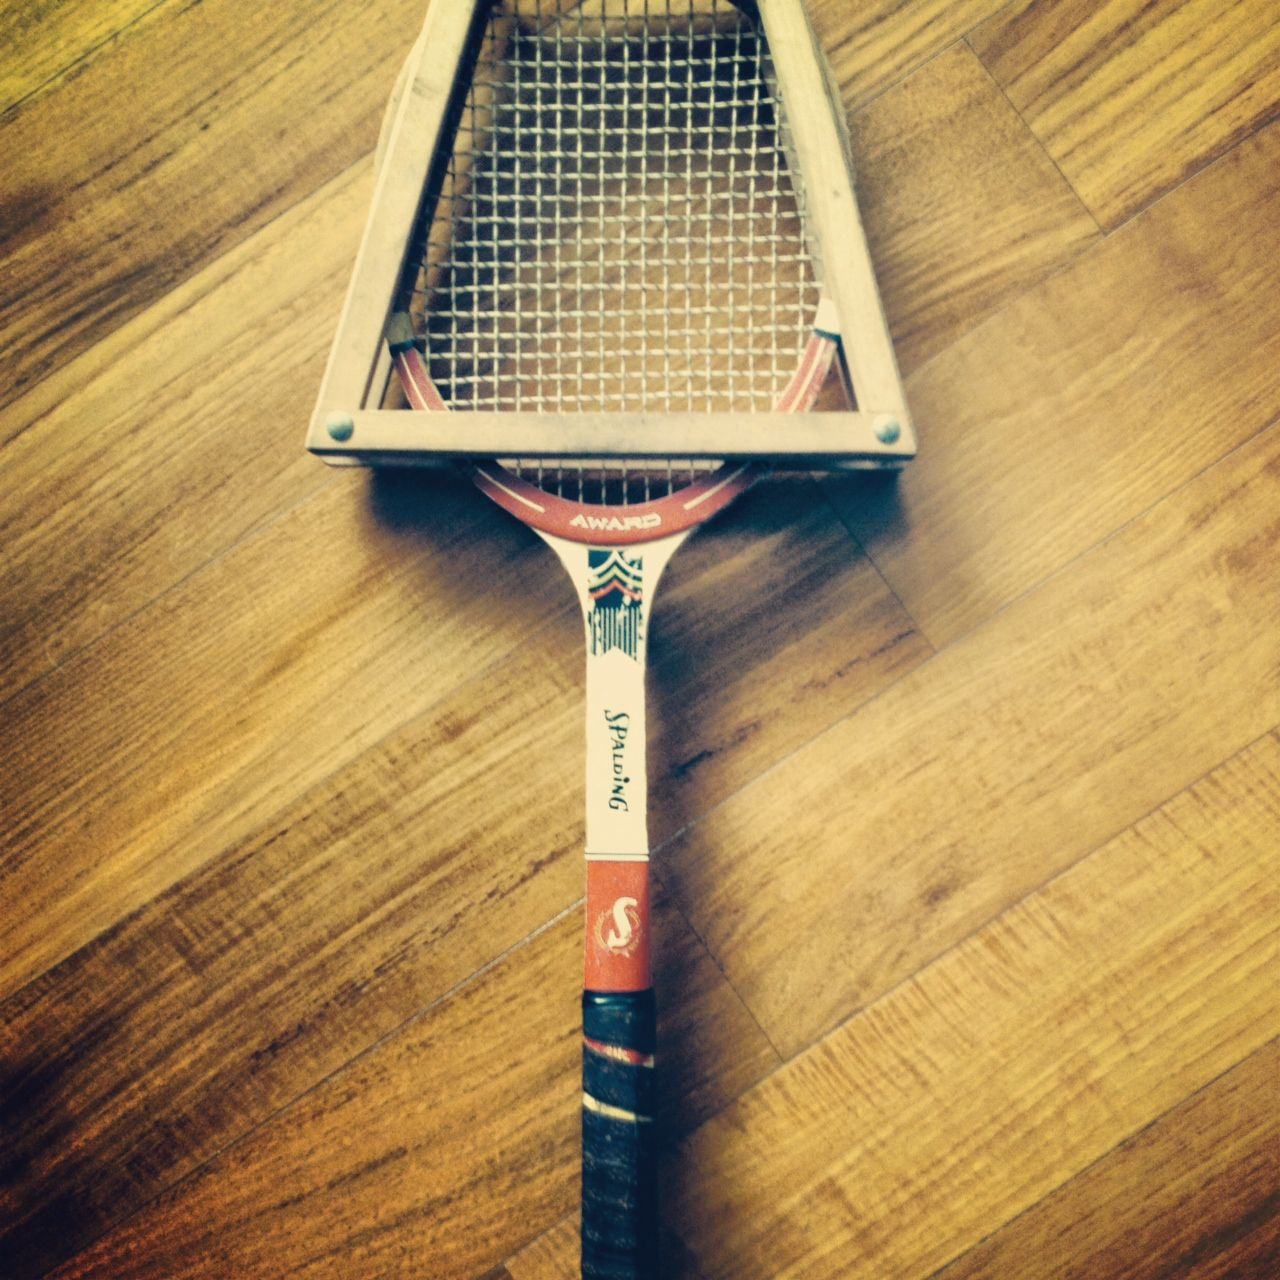 Rare Vintage Spalding Award Model Red Wooden Tennis Racket Circa Late 1950 S Antique Atlanta Alta Tenni Antique Stores Antique Collection Tennis Racket